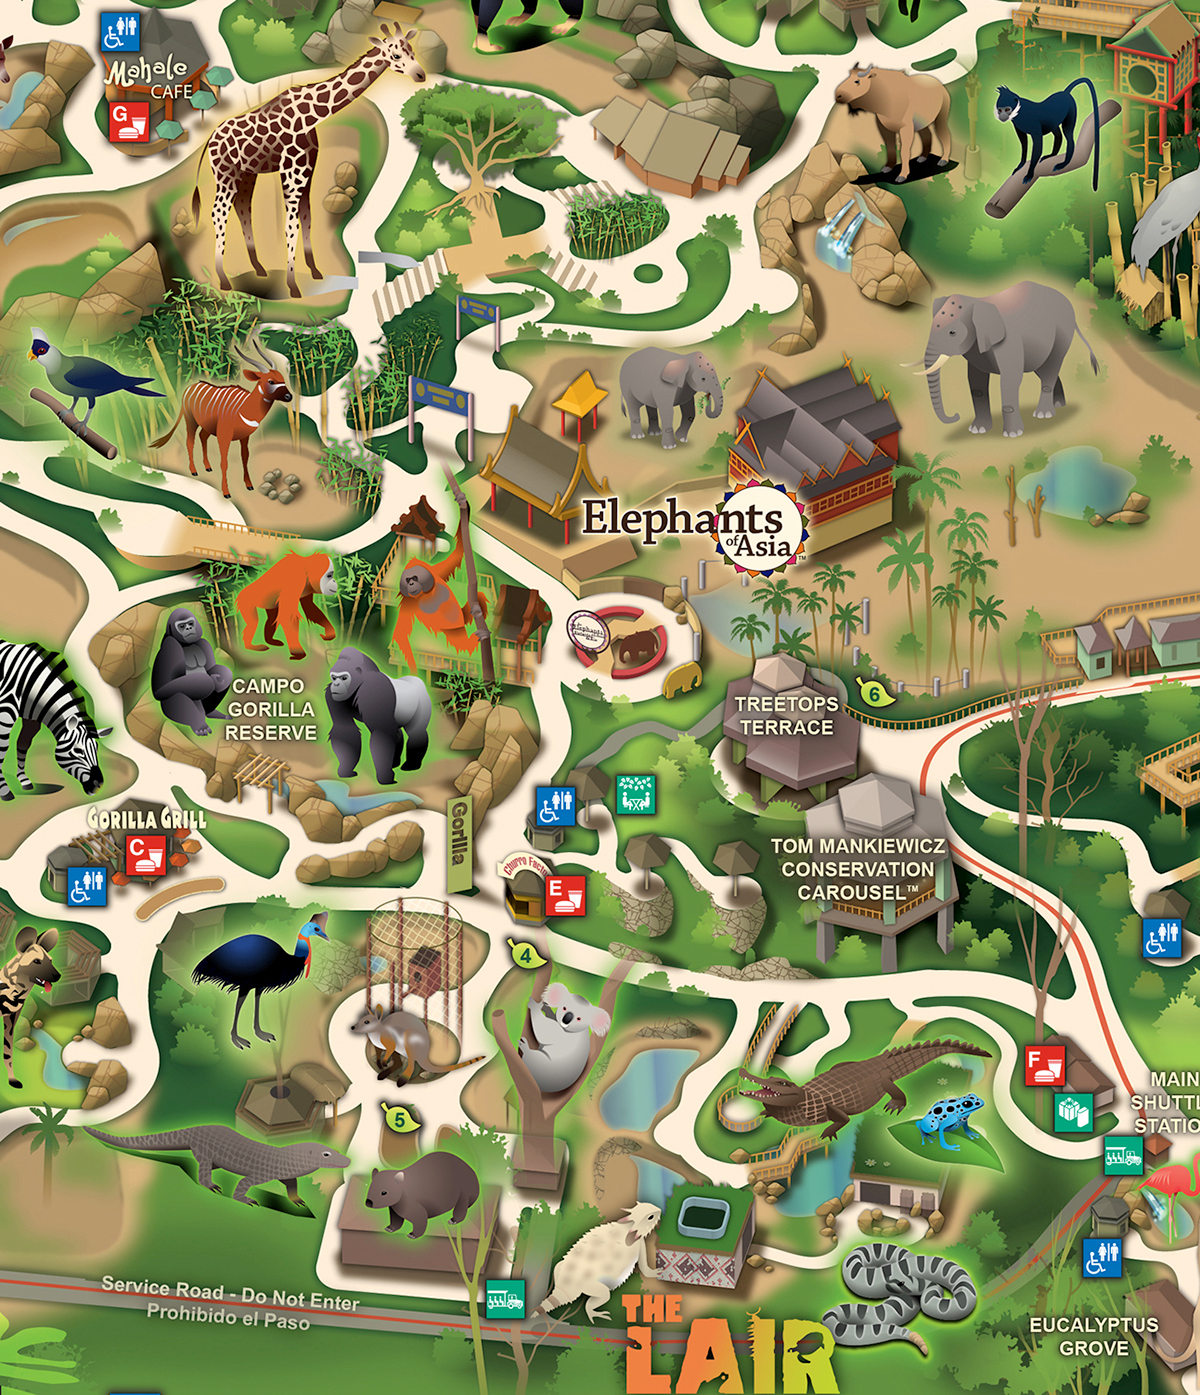 LA ZOO on Behance Los Angeles Zoo Map on african lion safari map, south los angeles map, cbs studios map, griffith park map, angels flight map, greater los angeles area map, kansas city zoo map, north los angeles county map, callejones de los angeles map, university of maryland medical center map, columbus zoo and aquarium map, six flags magic mountain map, los feliz map, la brea tar pits map, point defiance zoo & aquarium map, arizona-sonora desert museum map, los angeles fashion district map, el dorado nature center map, disneyland map, national zoo map,